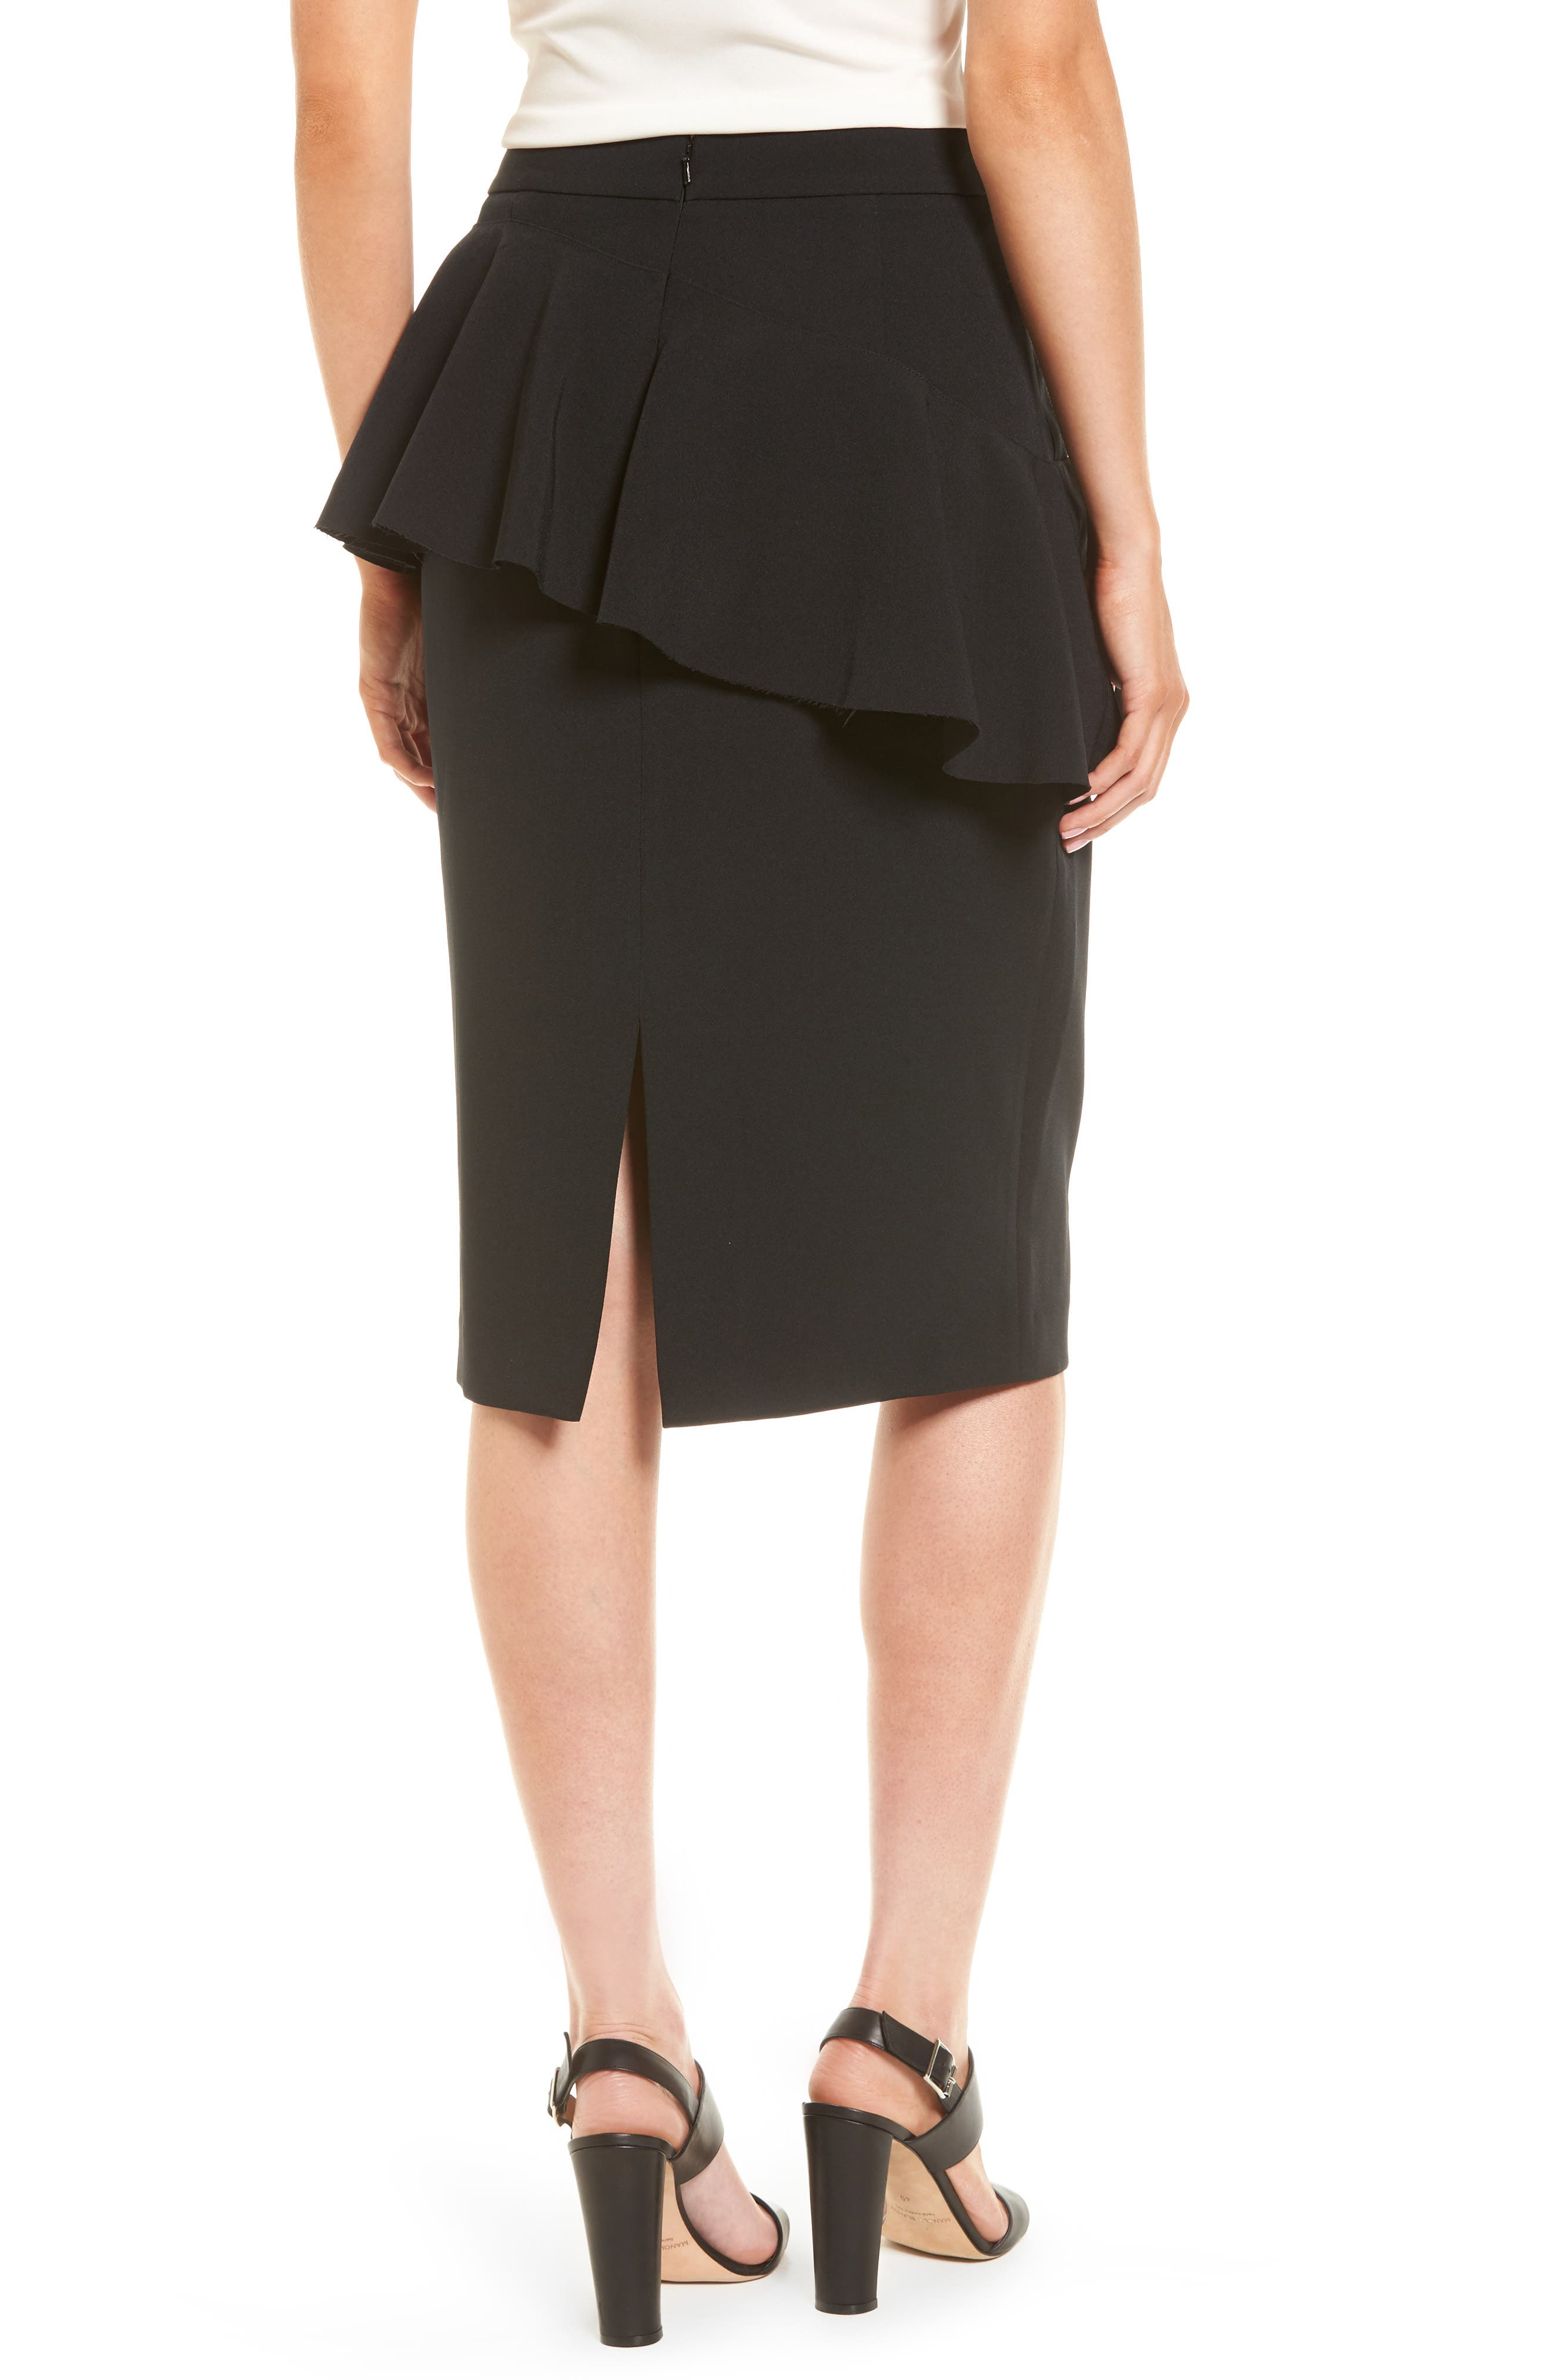 Ruffle Detail Pencil Skirt,                             Alternate thumbnail 2, color,                             Black